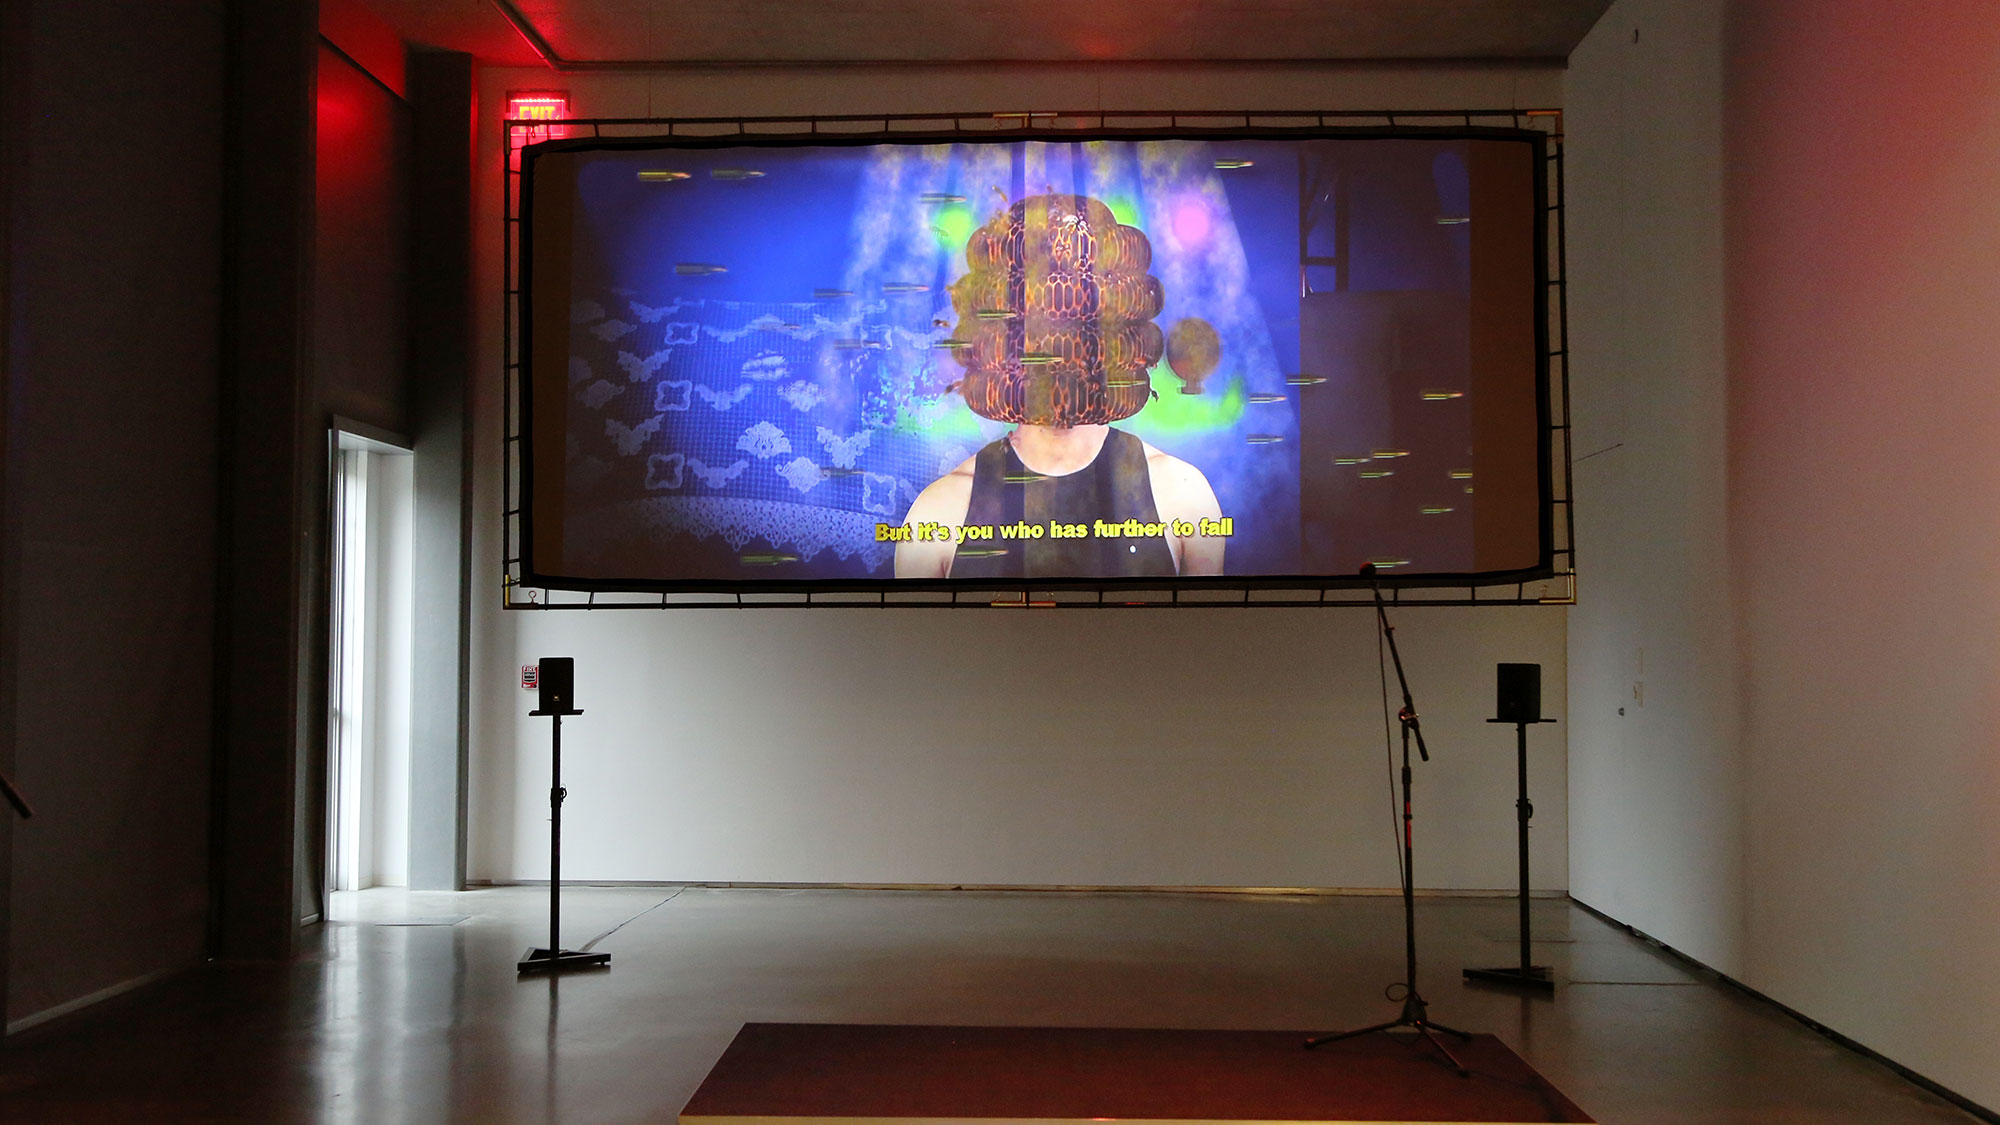 Wickerham & Lomax | Take Karaoke: A Proposition for Performance Art